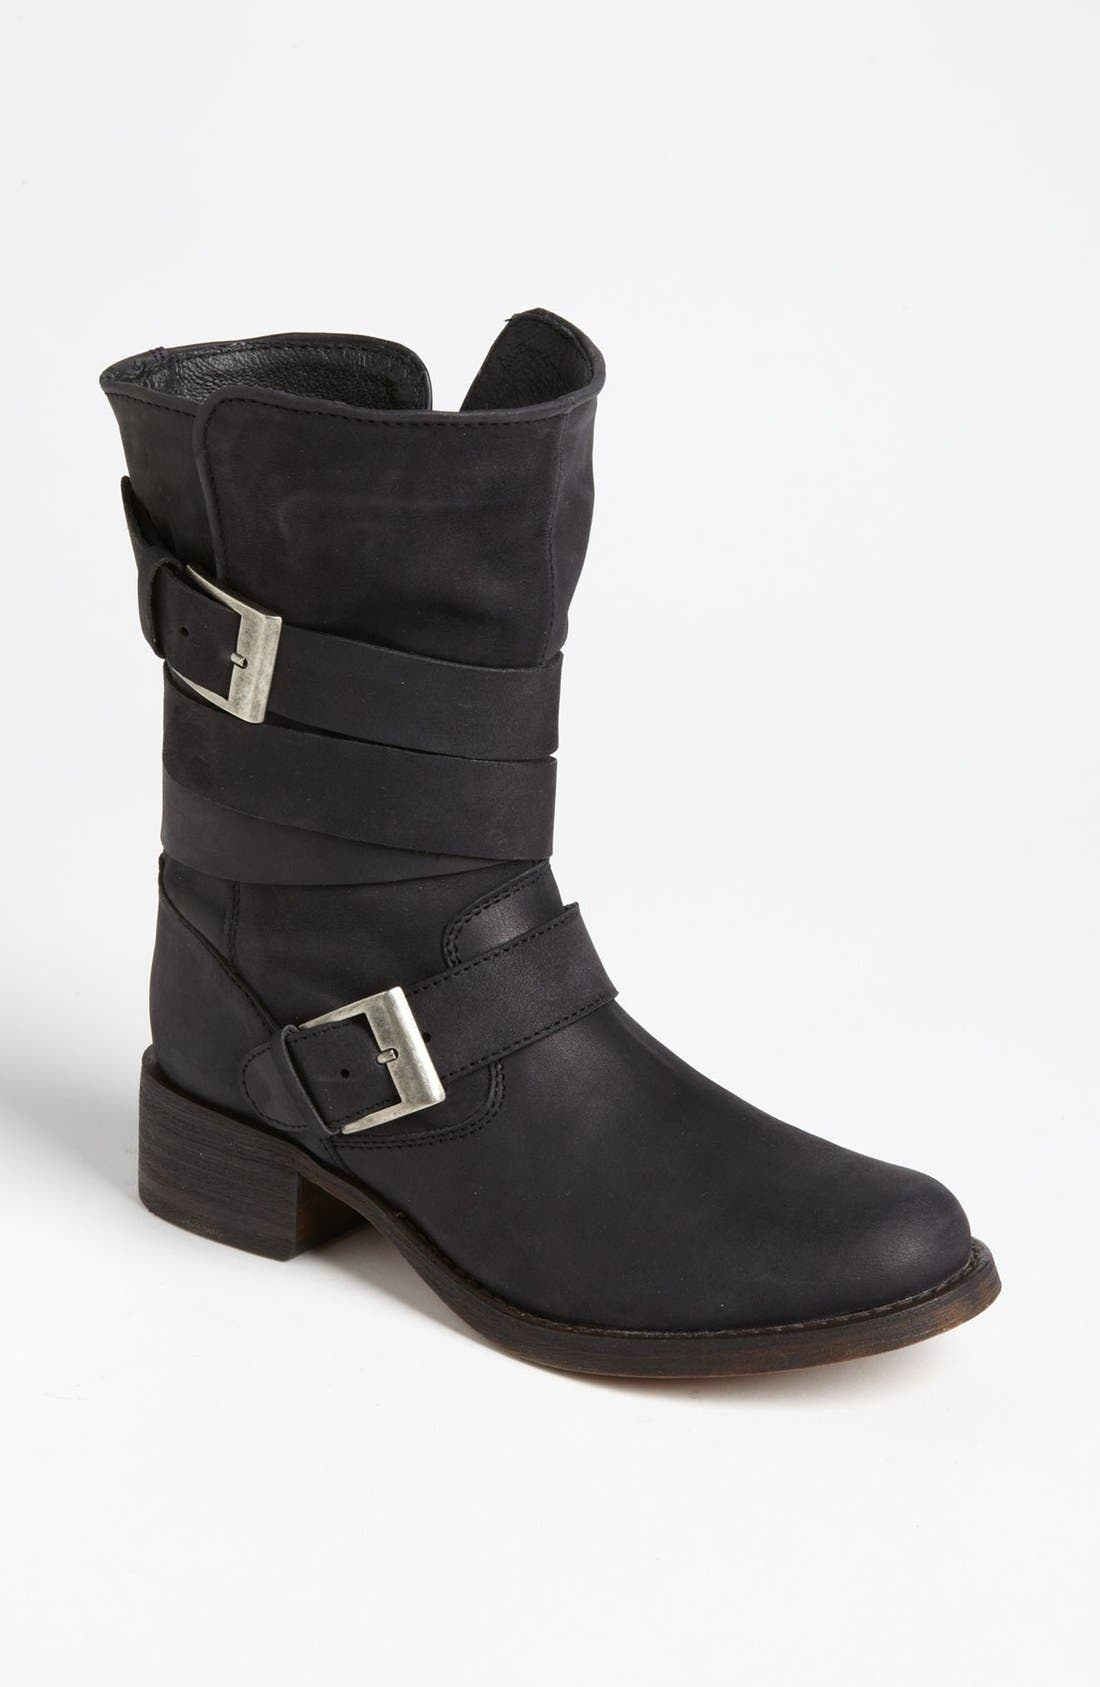 STEVE MADDEN, 'Brewzzer' Boot, Main thumbnail 1, color, 001